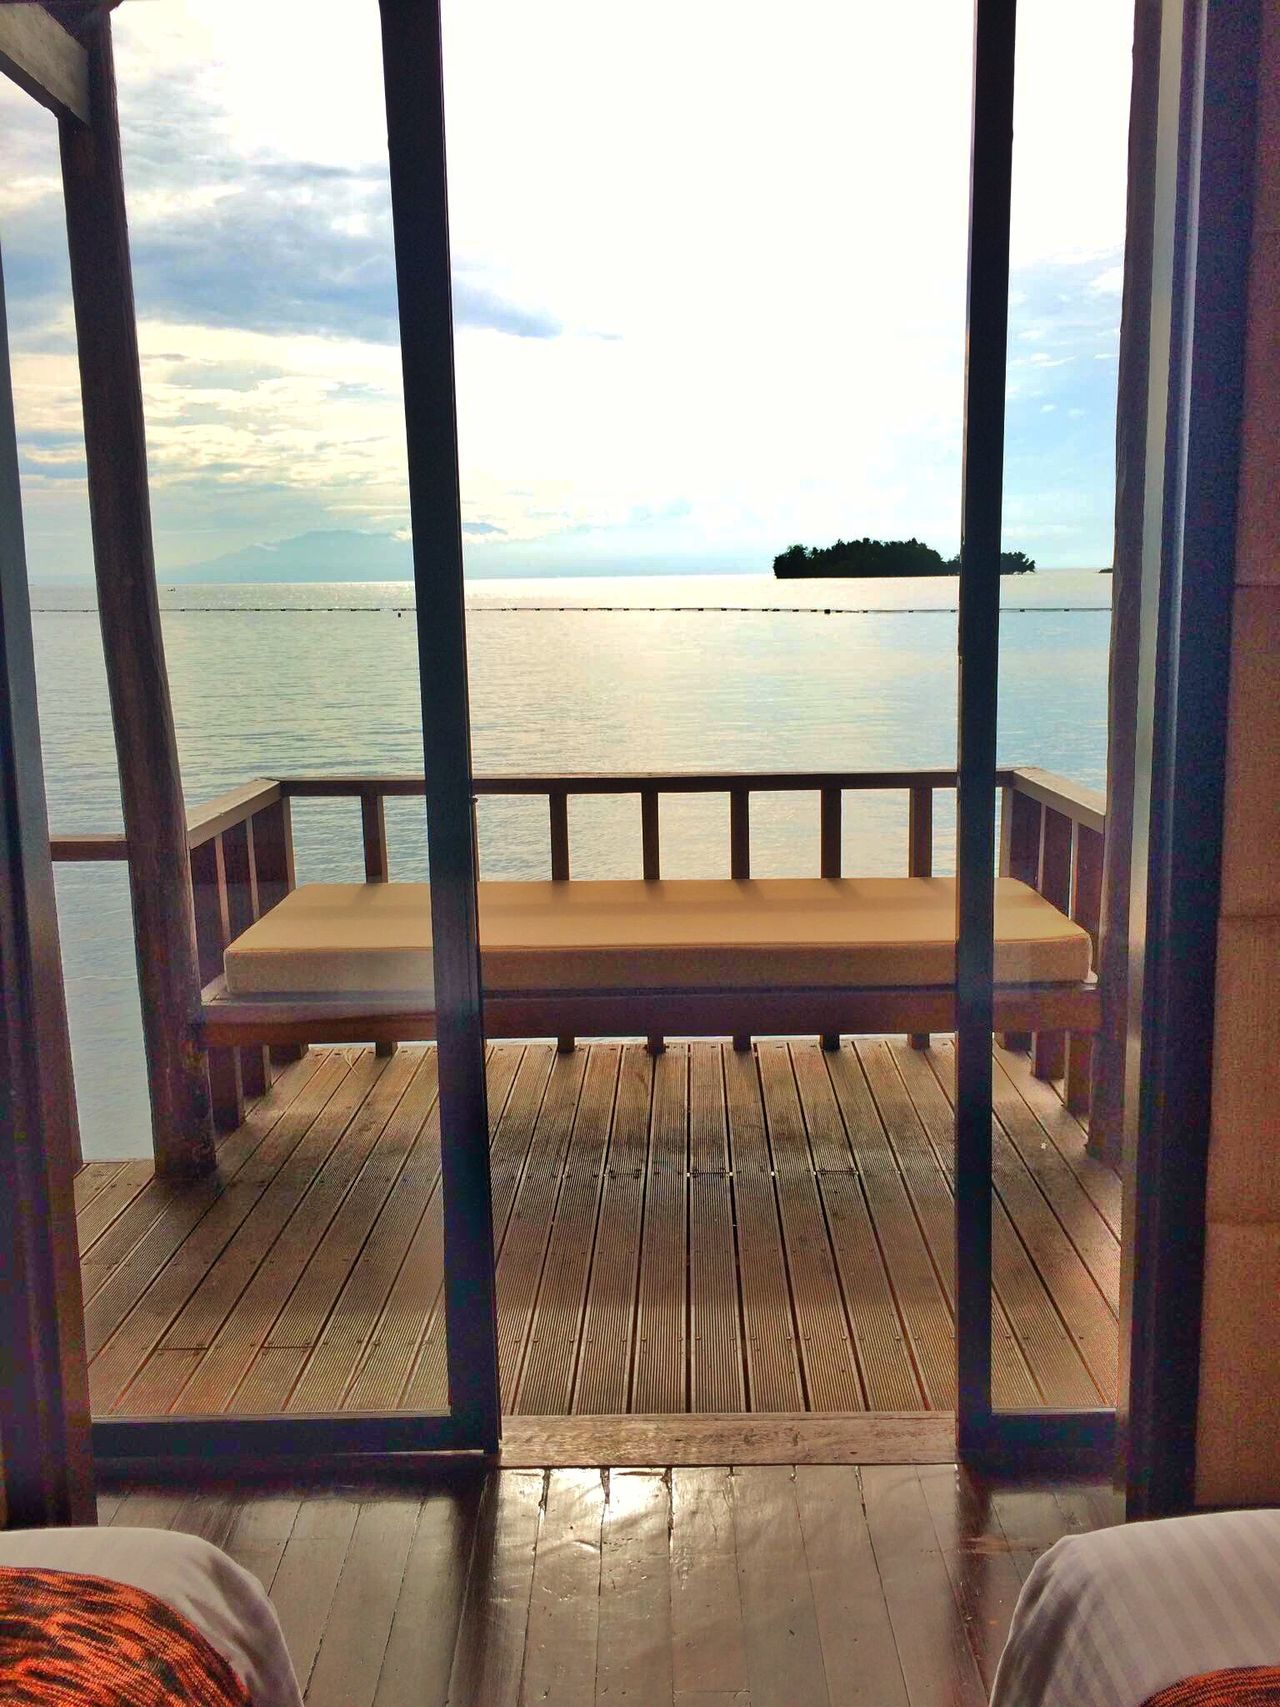 Table Chair Sea Indoors  Hardwood Floor Window Horizon Over Water No People Day Travel Destinations Philippines Tranquility Waterbungalows Furniture Nature Sky Water Luxury Scenics